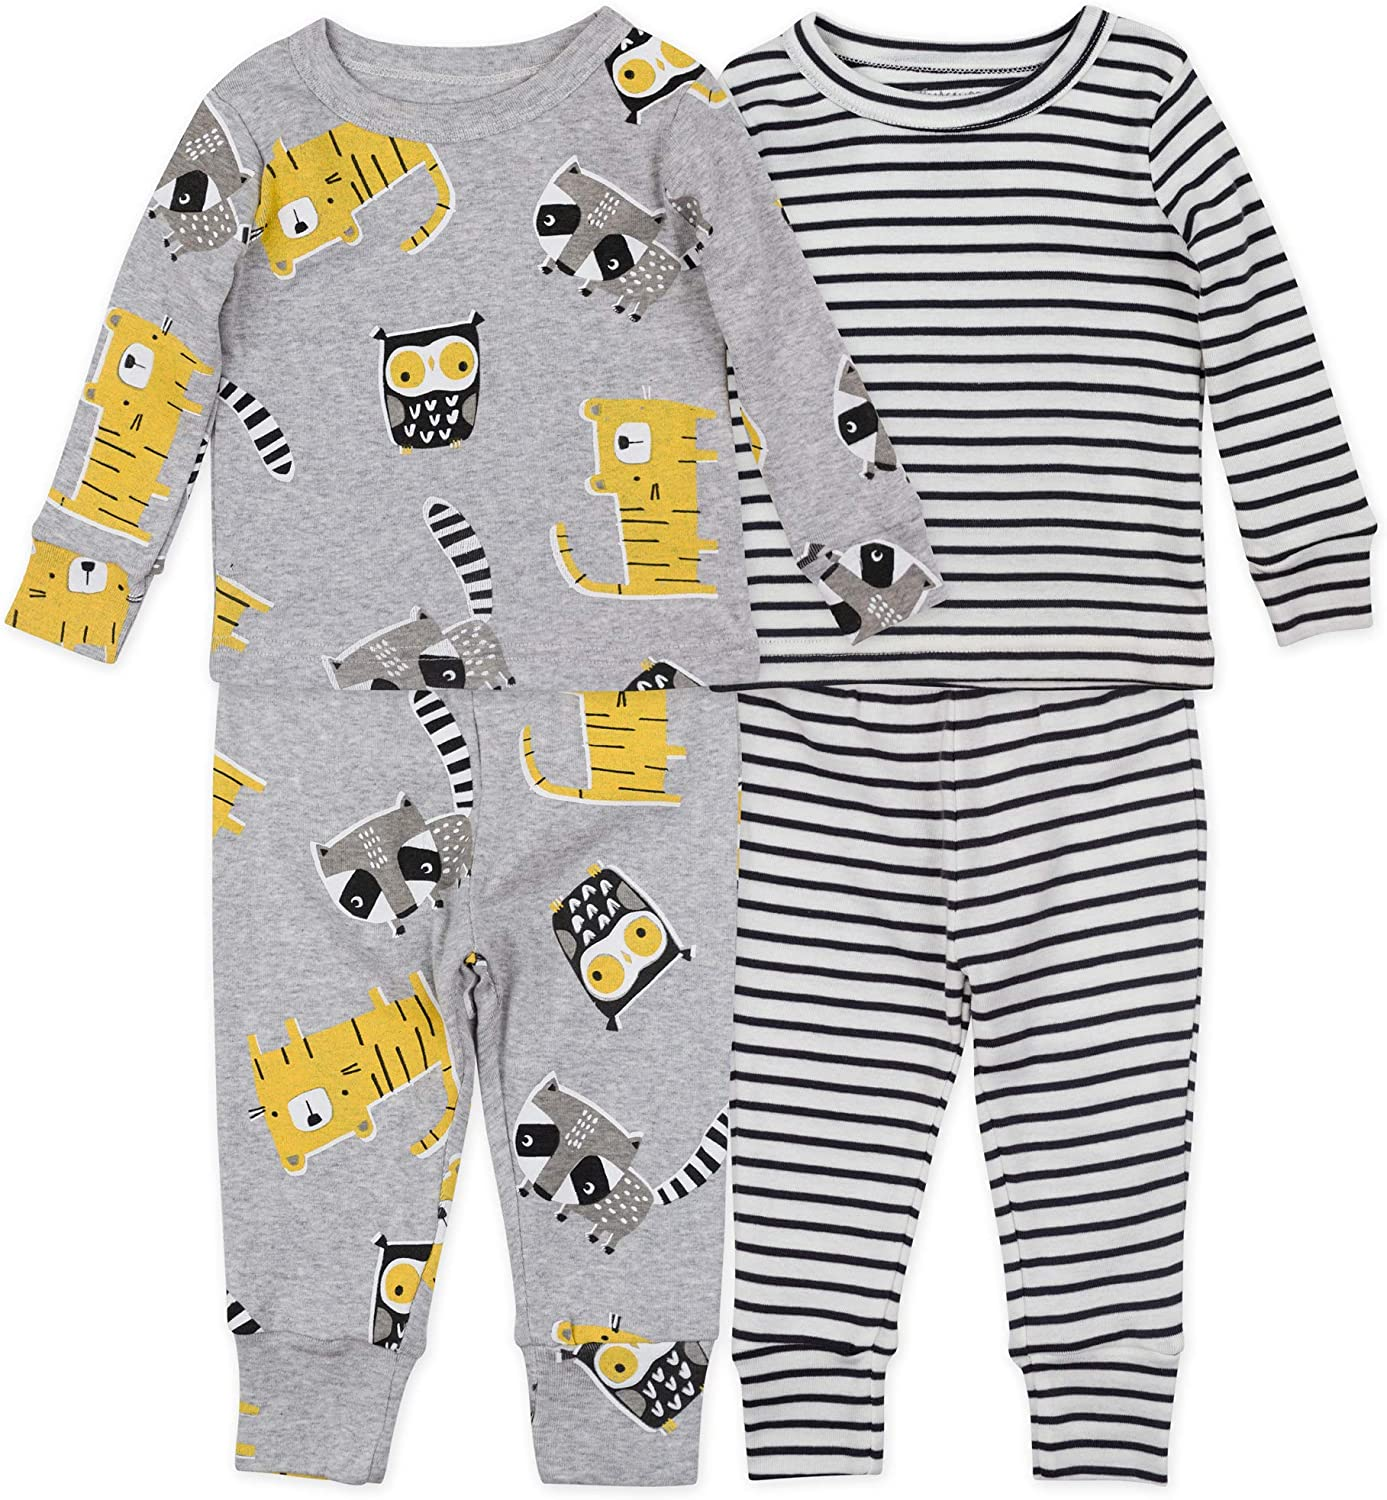 4-Piece Tight Fit Organic Cotton Pajama Set by Mac & Moon in Baby Boy, Girl Prints